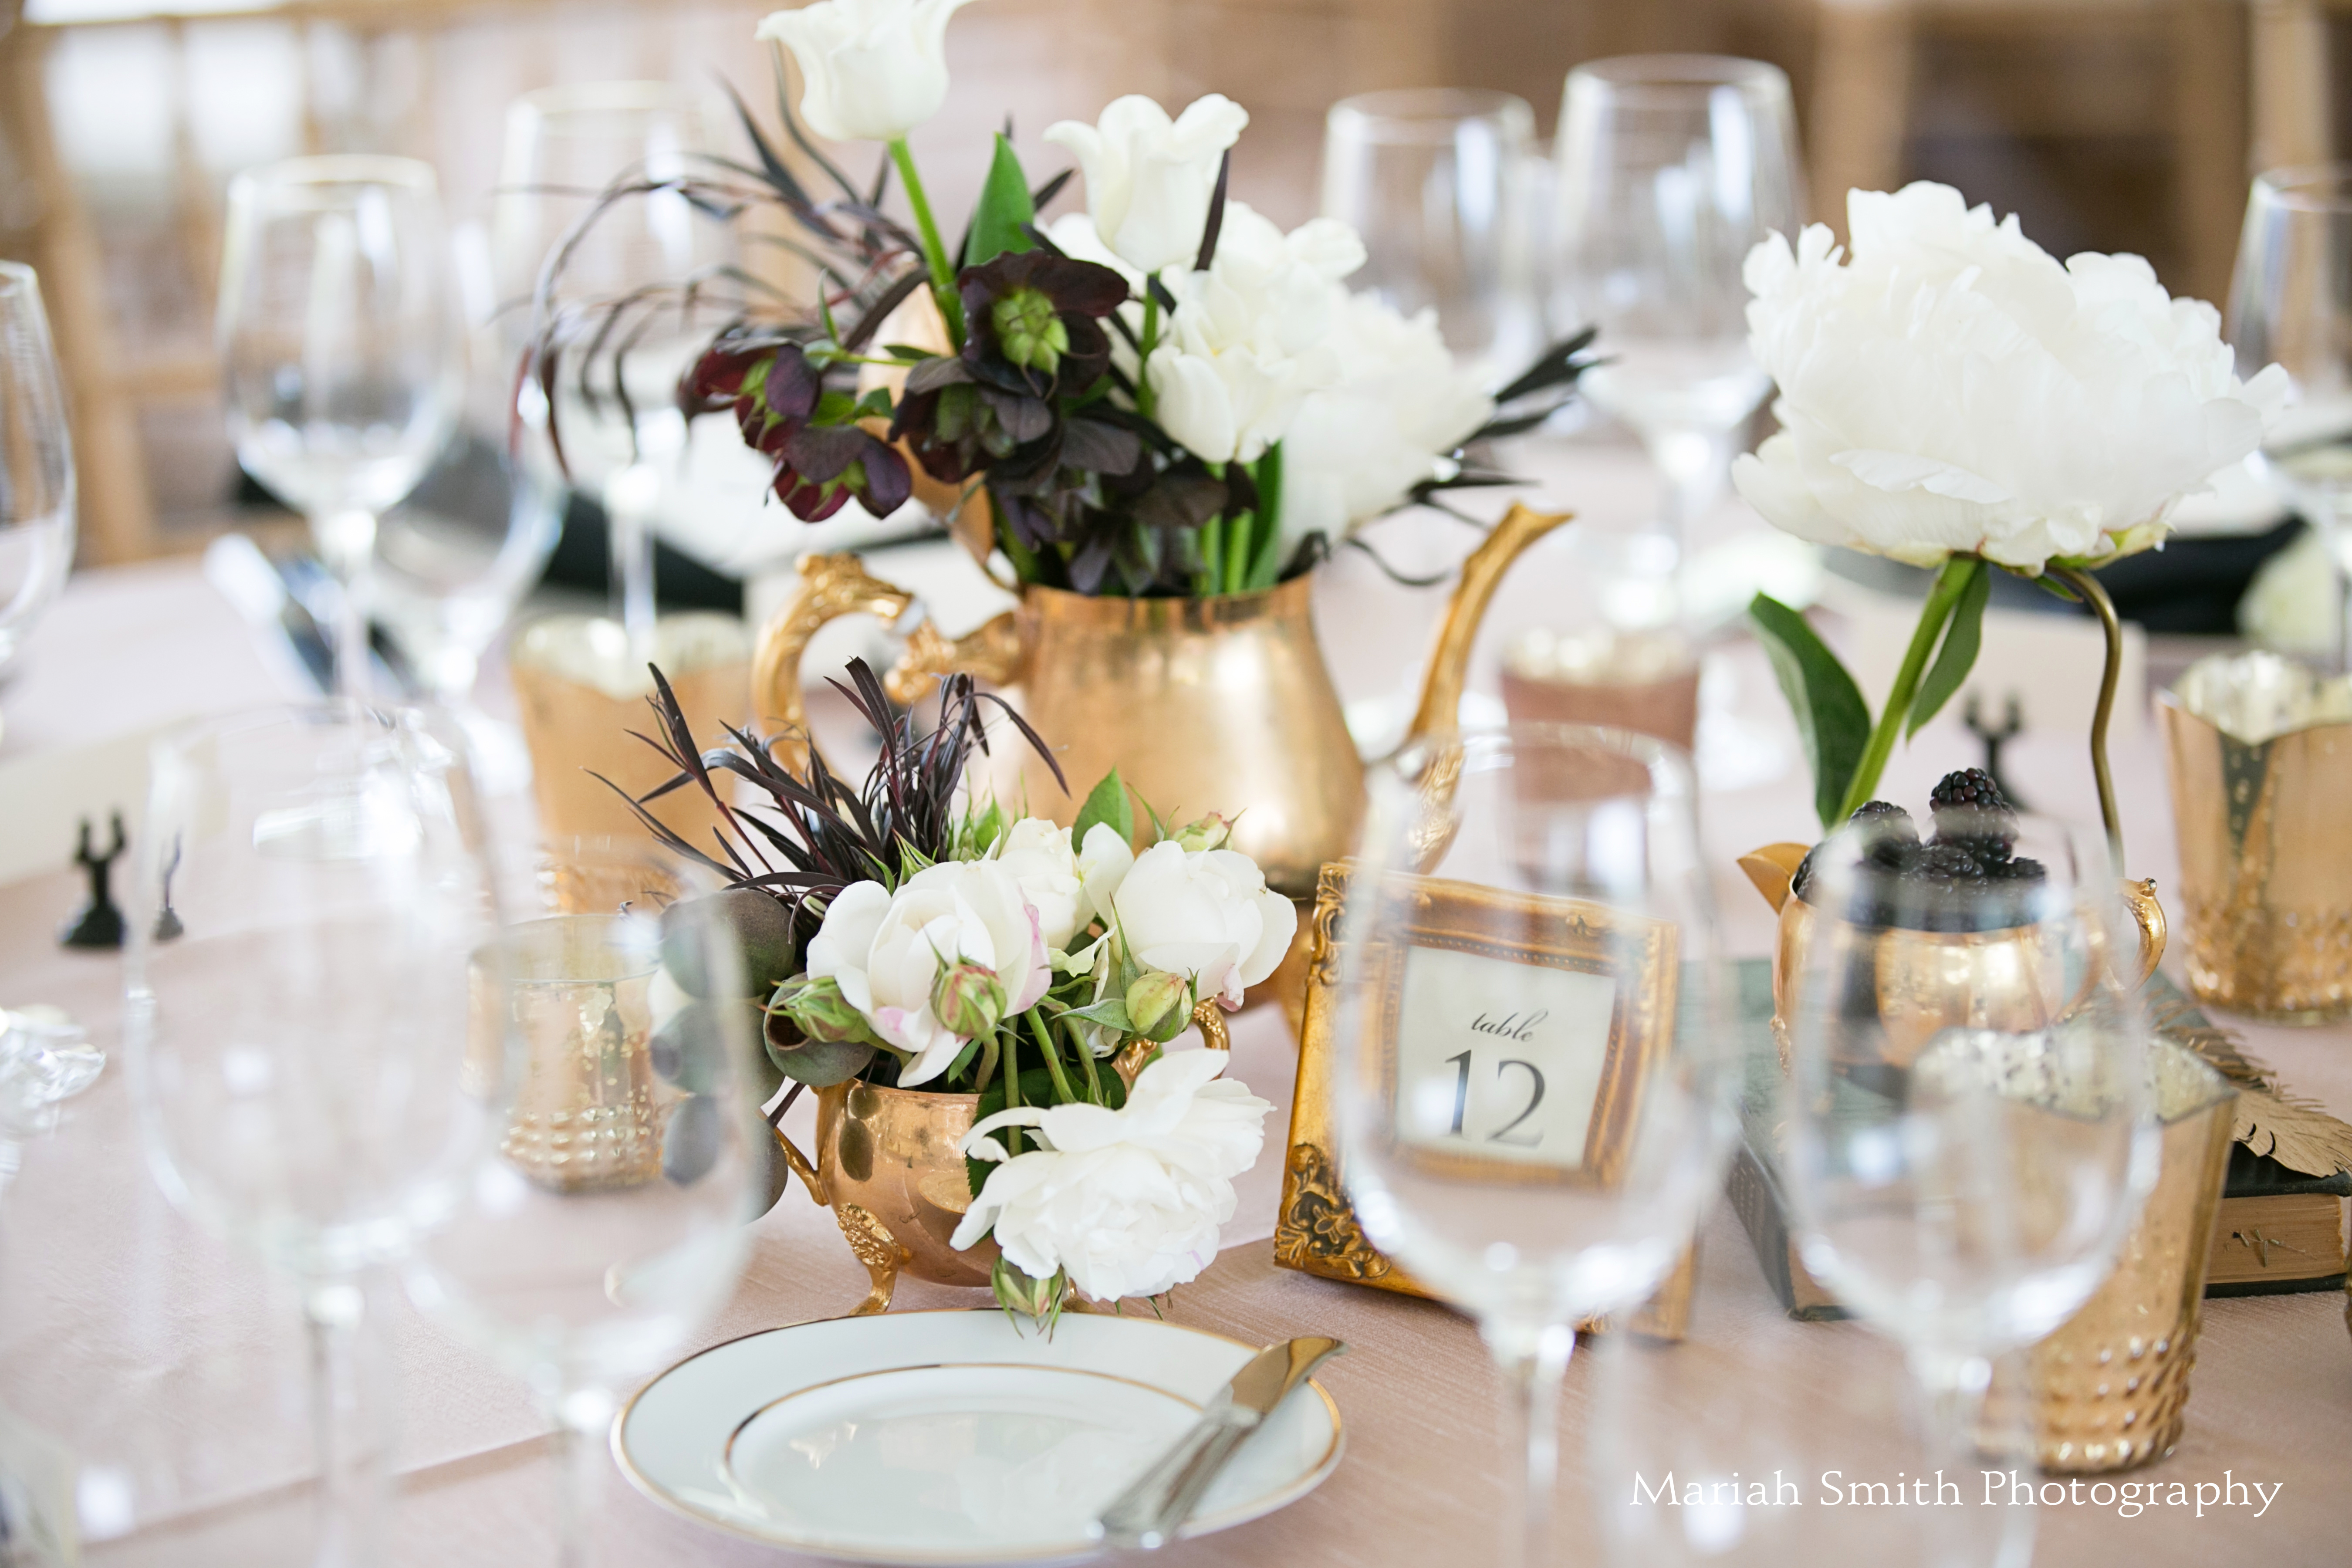 kunde winery wedding tablescape